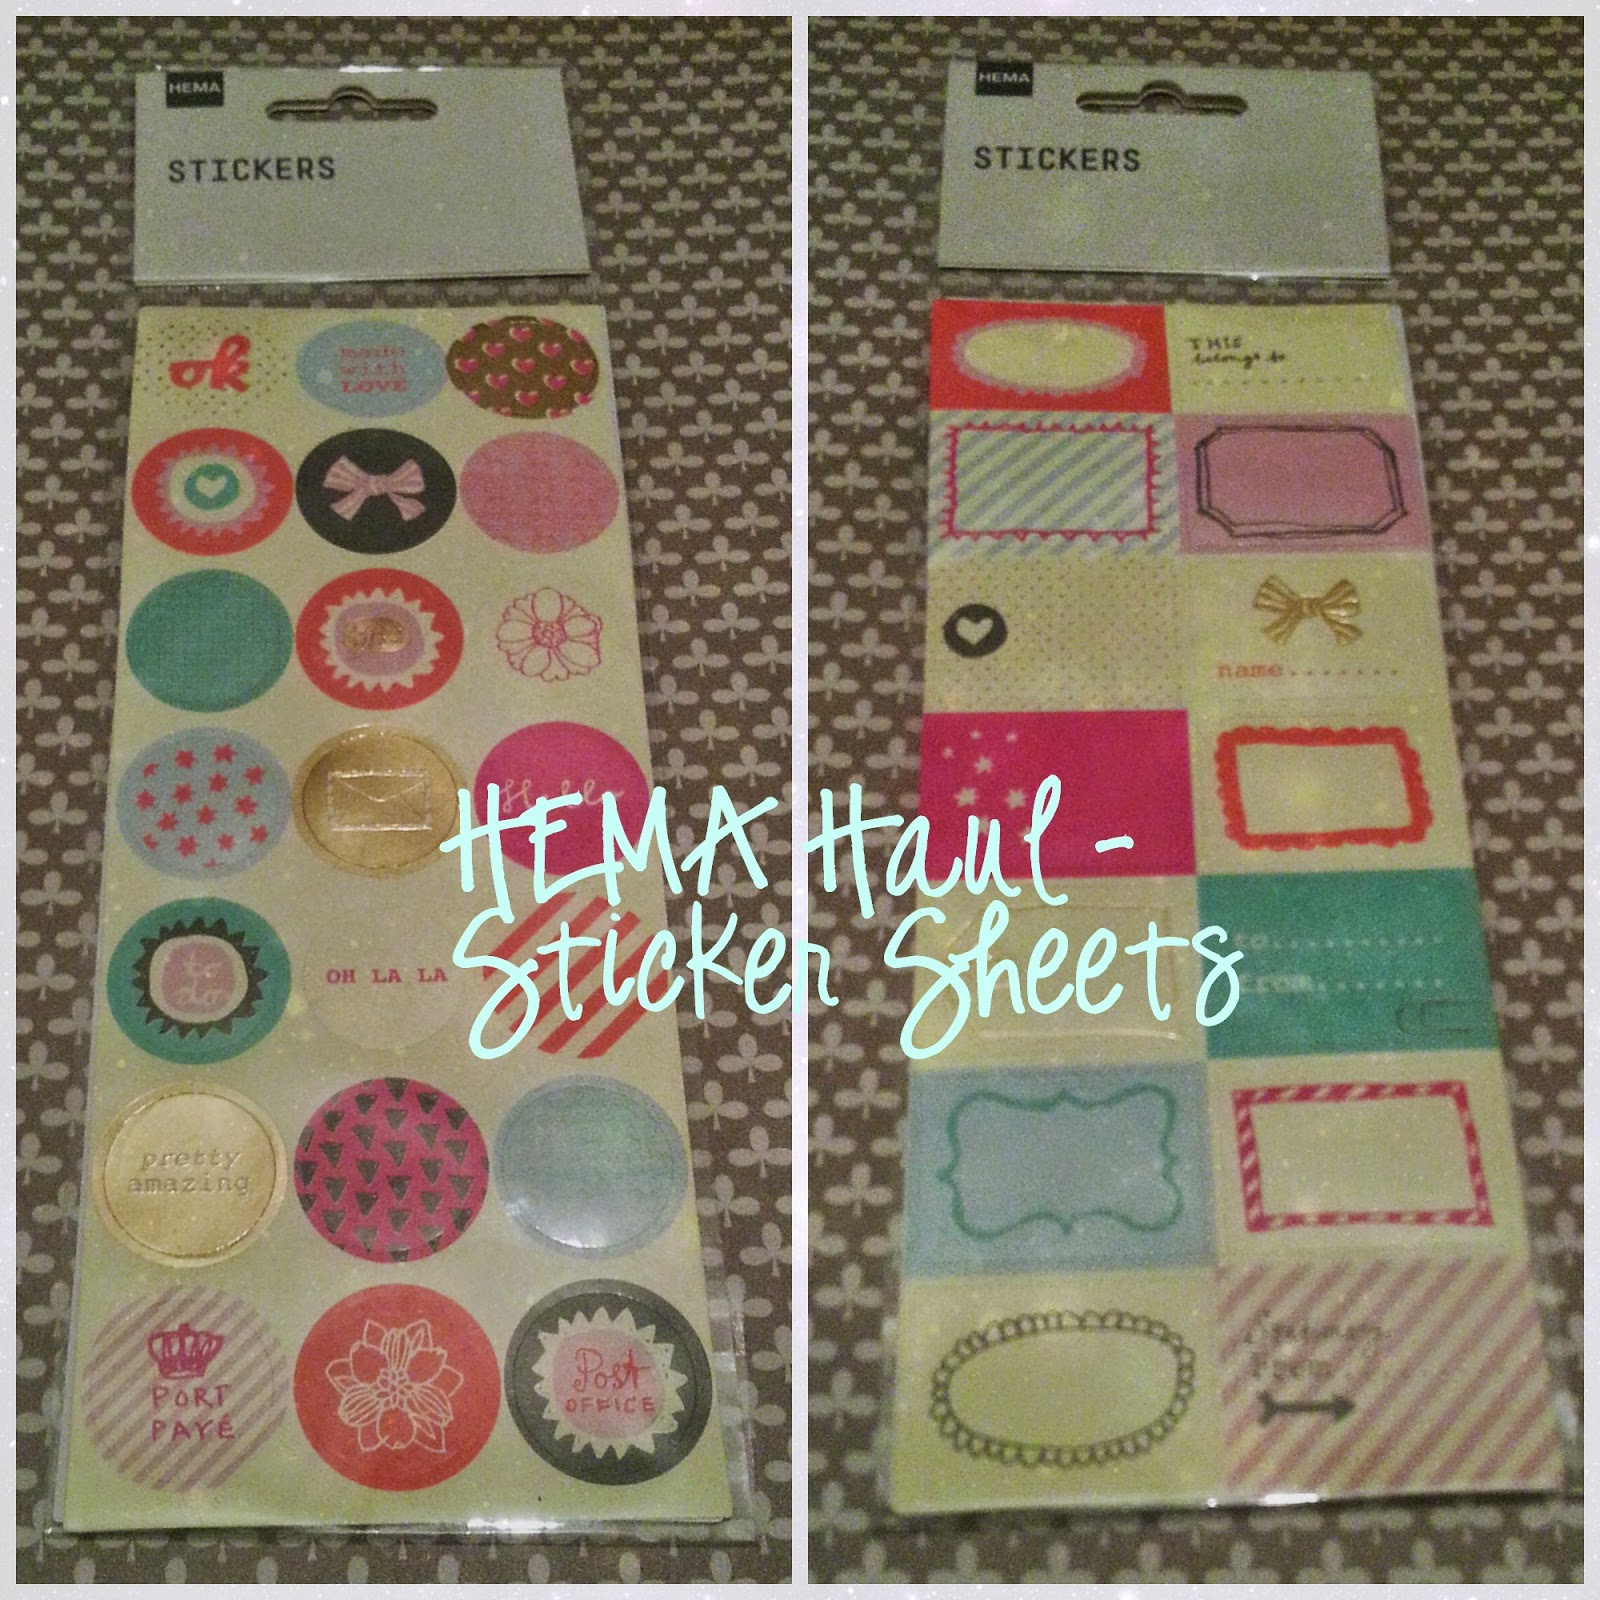 HEMA haul sticker sheets